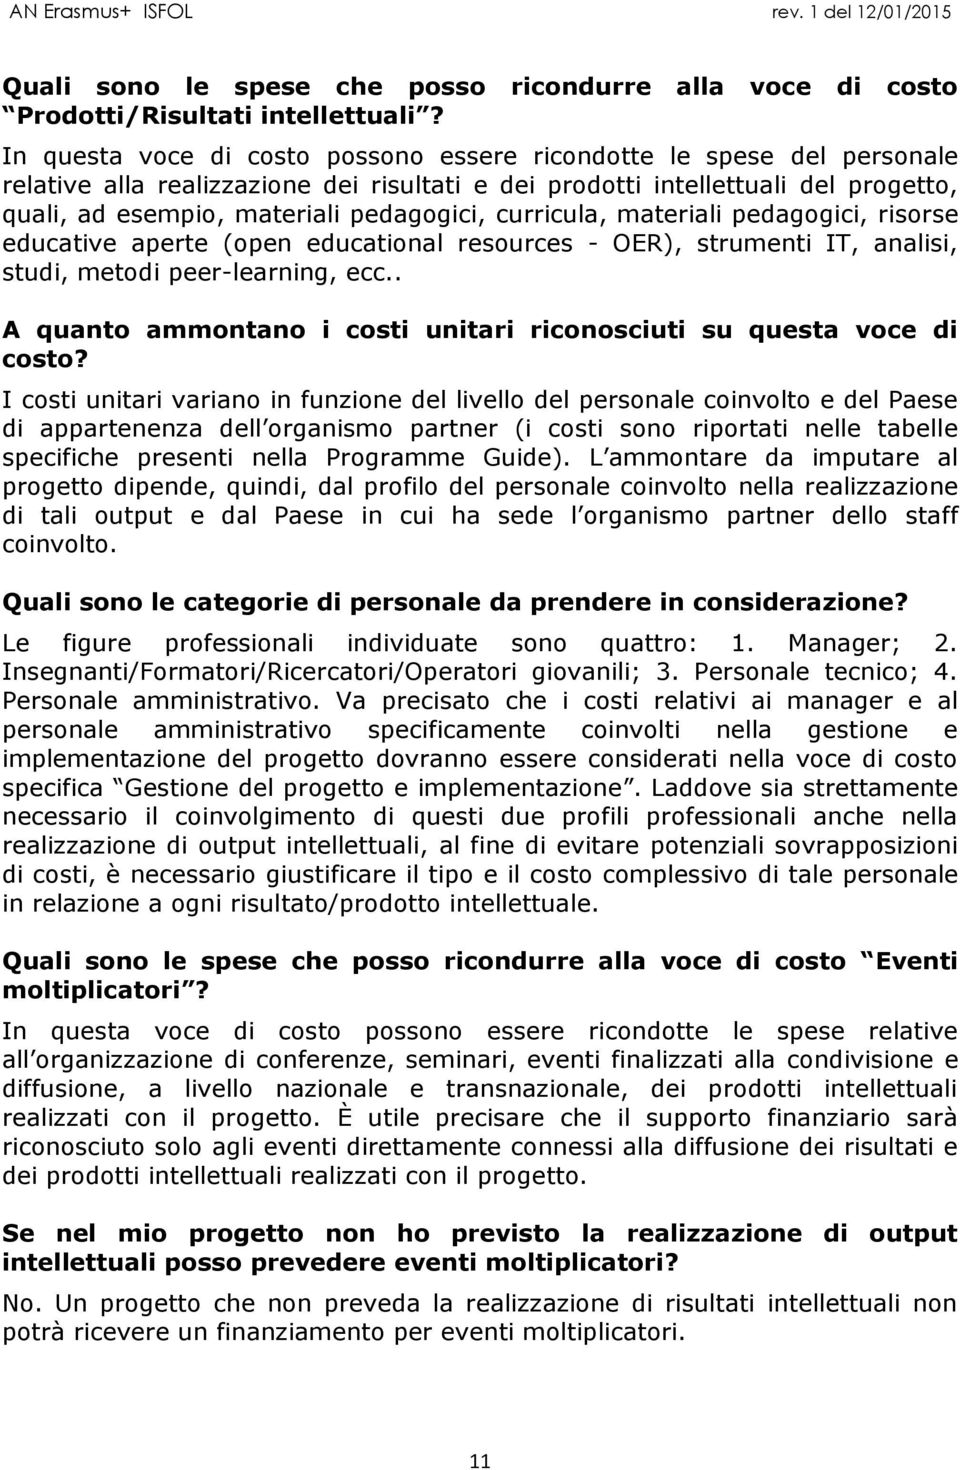 curricula, materiali pedagogici, risorse educative aperte (open educational resources - OER), strumenti IT, analisi, studi, metodi peer-learning, ecc.